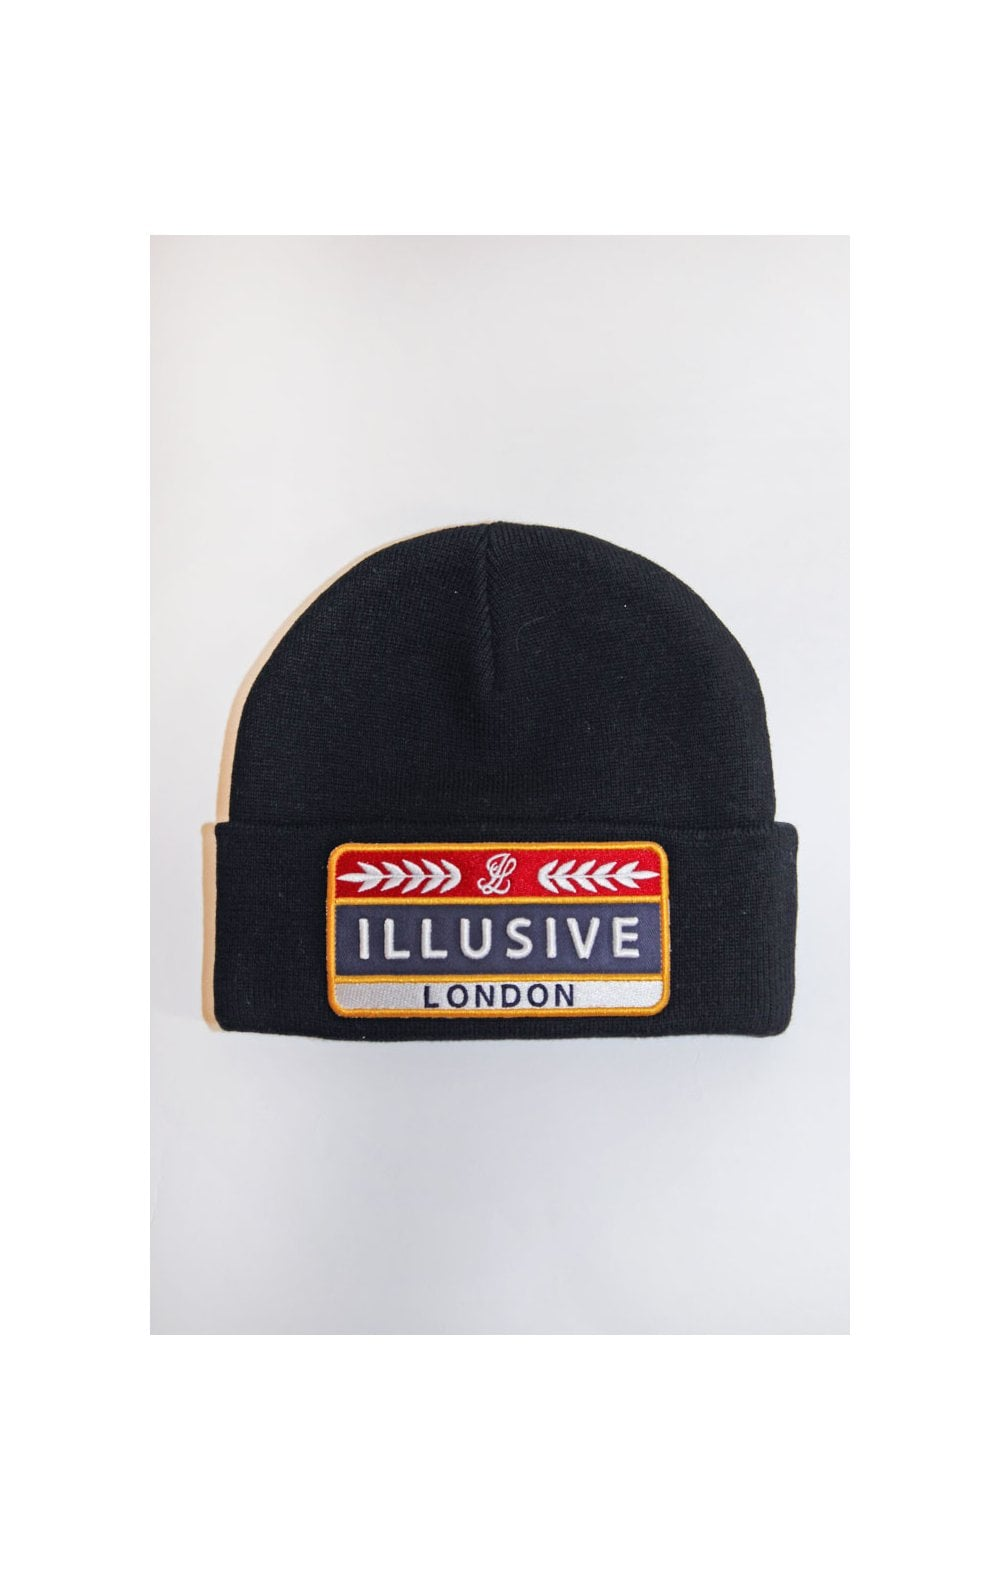 Illusive London Patch Beanie - Black